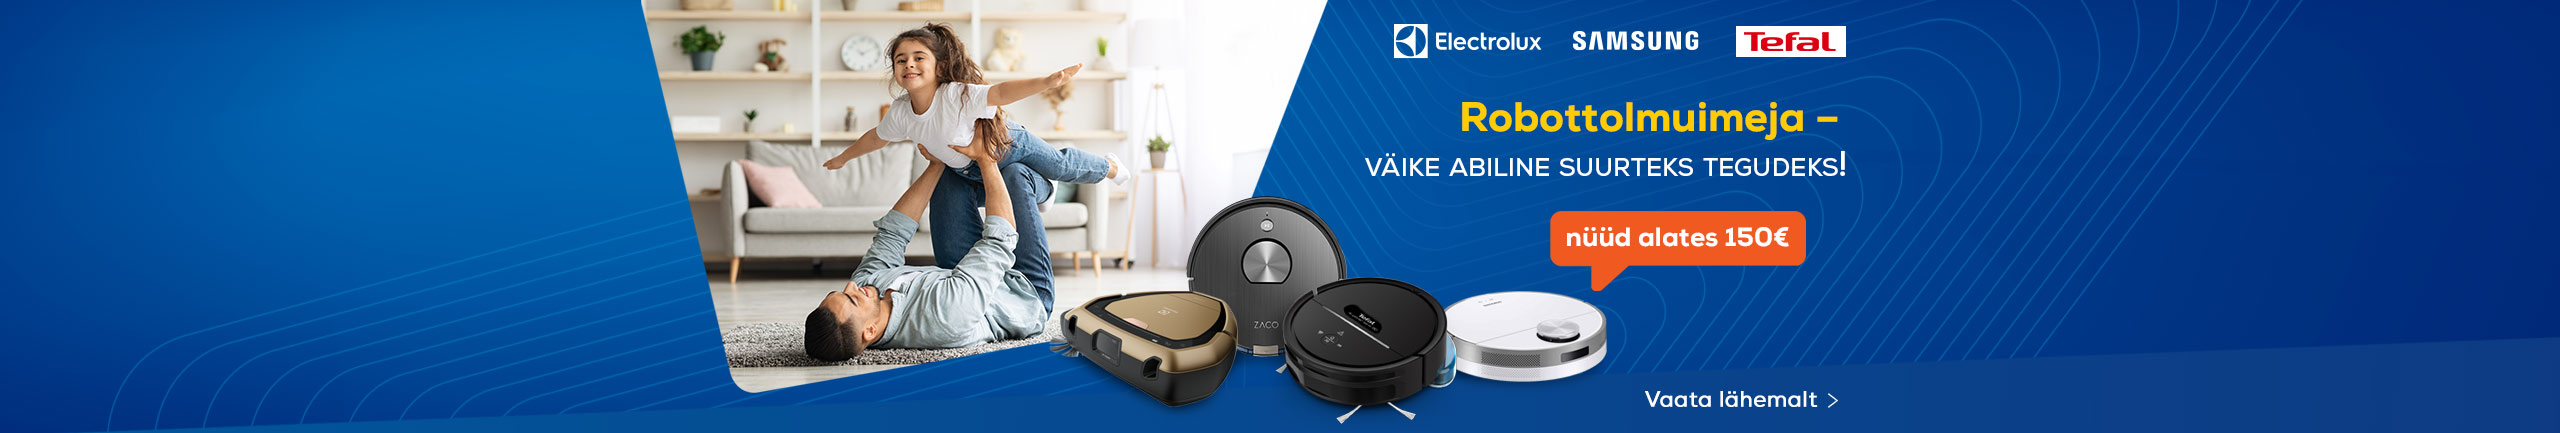 Small helper ready for big work - discover robot vacuum cleaner